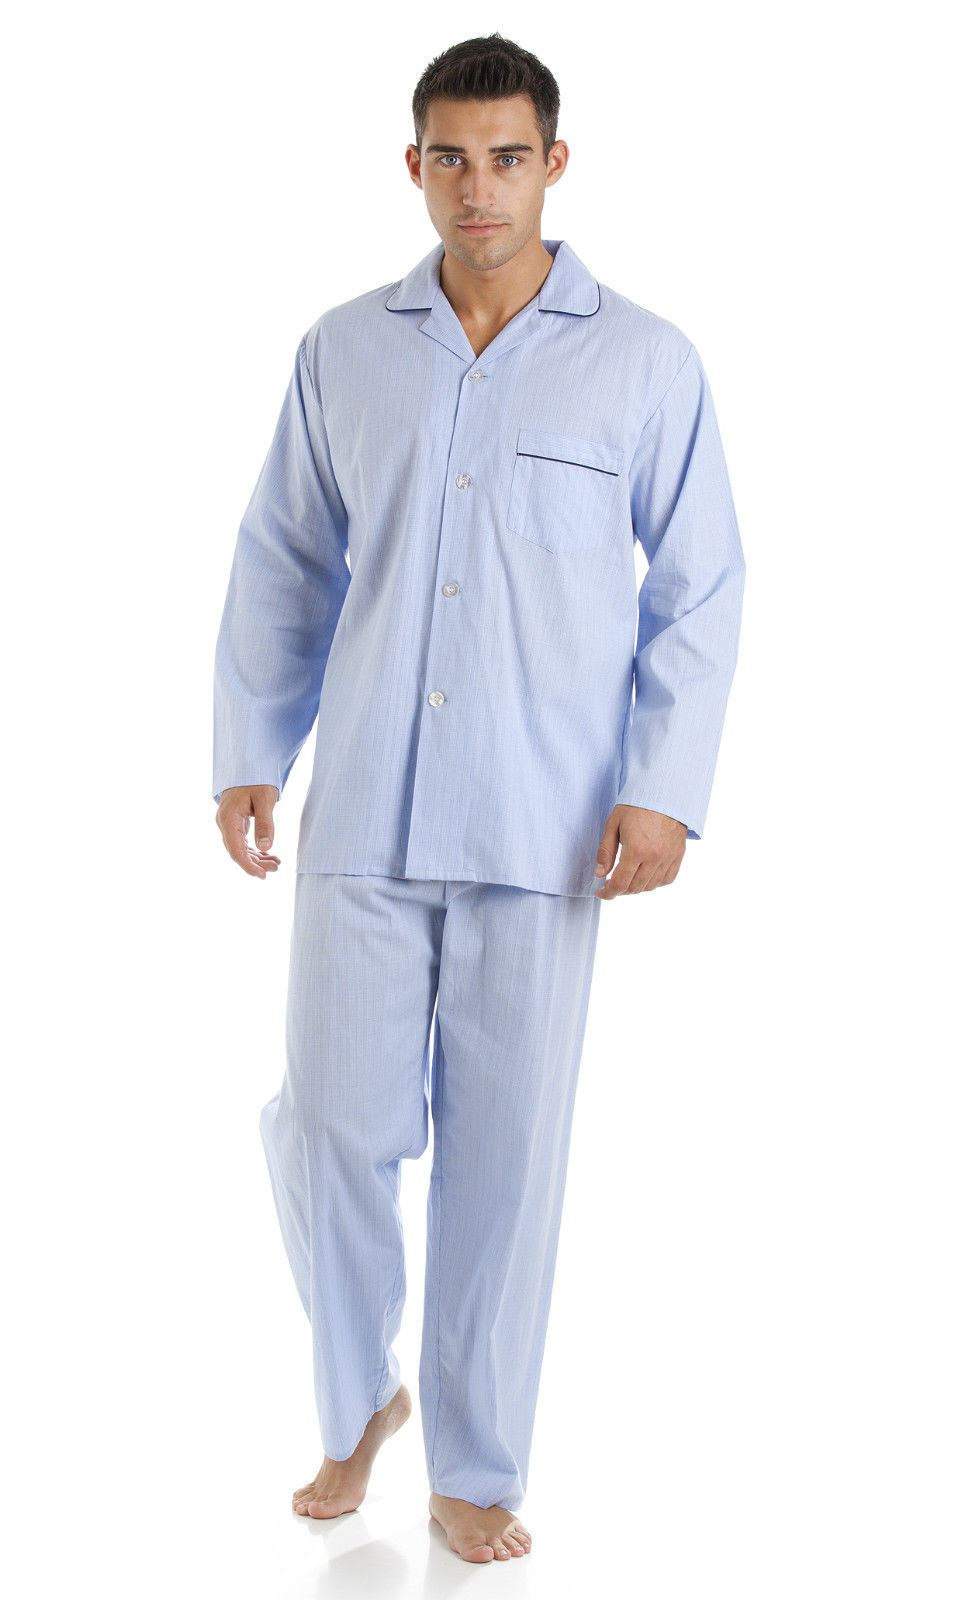 Men's Pajamas. We use cookies to better understand how the site is used and give you the best experience. By continuing to use this site, you consent to our Cookie Policy. The Cat's Pajamas Men's Wasabi Poplin Cotton Pajama Pant in Green. $; Add to cart. Drag and drop me to the cart. The Cat's Pajamas Men's Sushi Poplin Cotton Pajama.